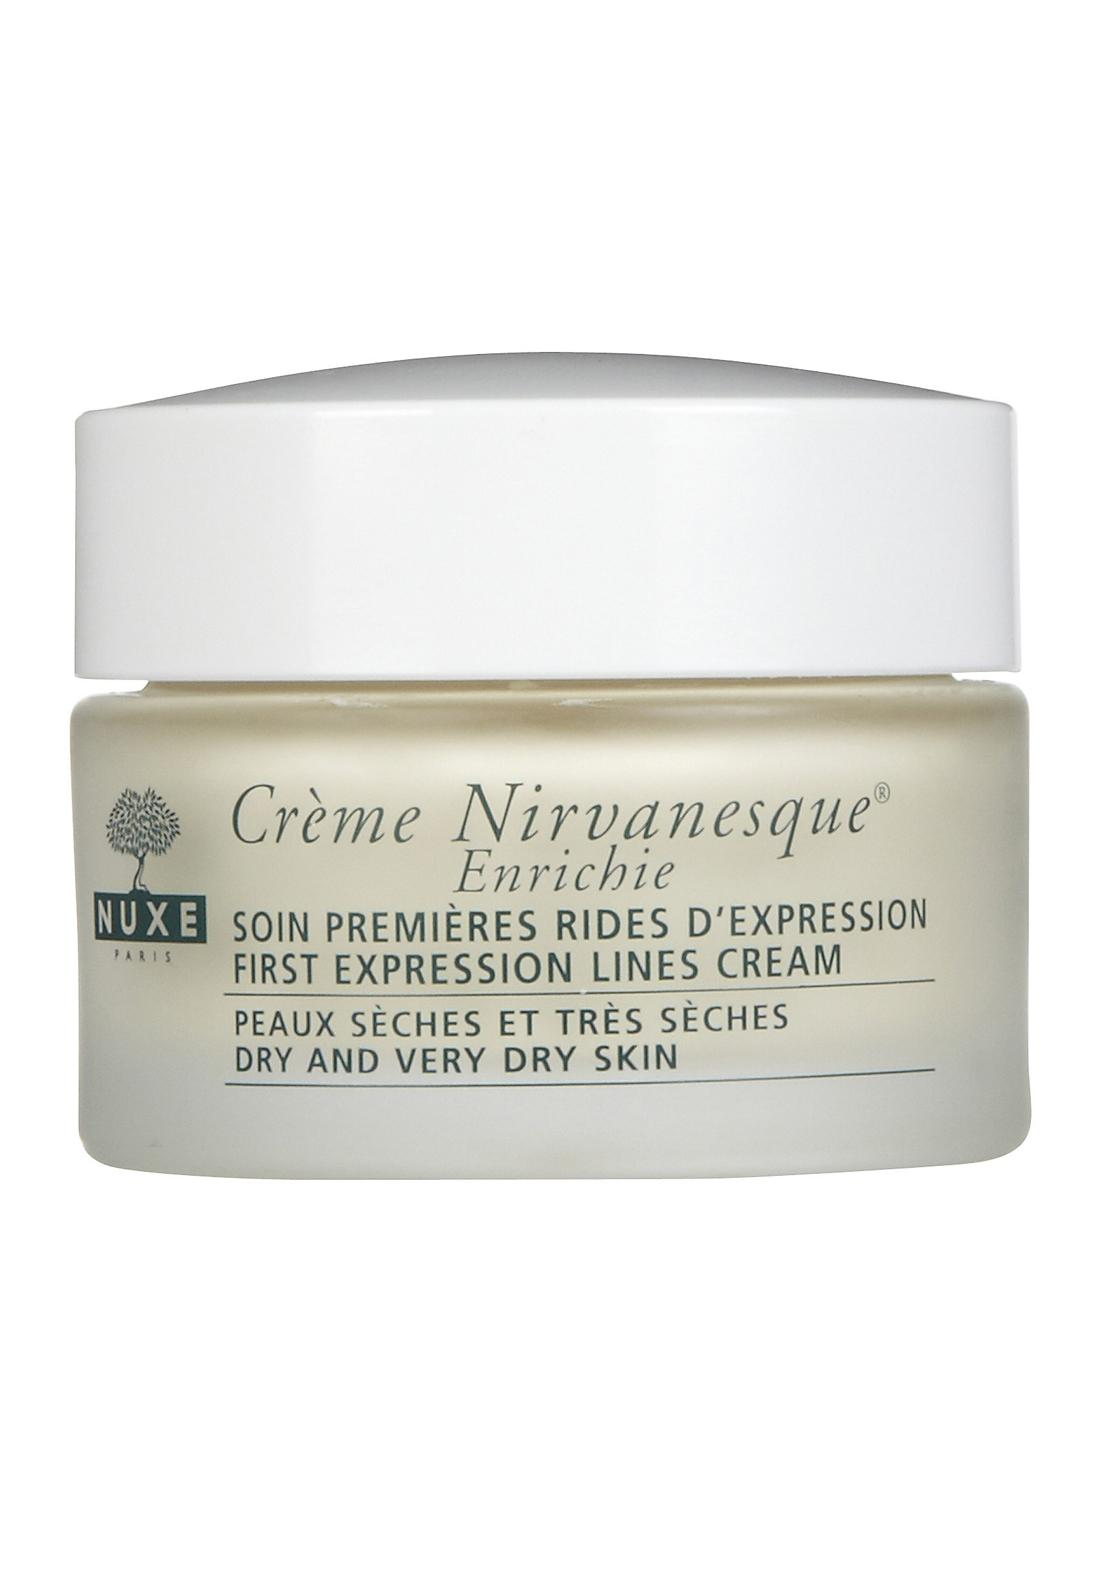 Nuxe Paris Creme Nirvanesque First Expression Lines Cream, 50ml